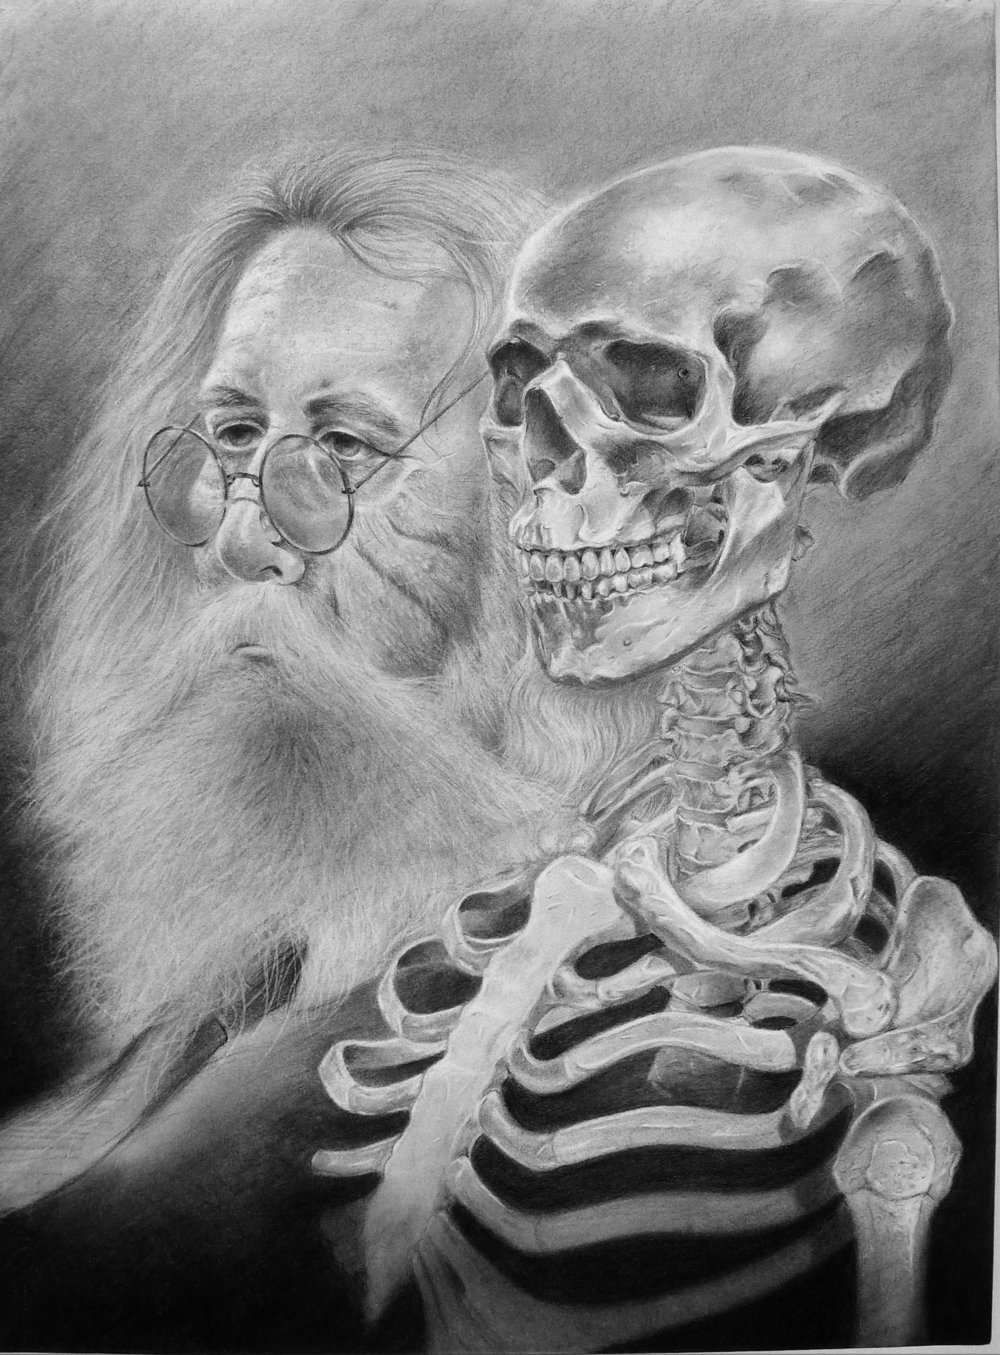 Henry & Skeleton, graphite on paper, 18 x 24 inches, 2015 copy.jpg